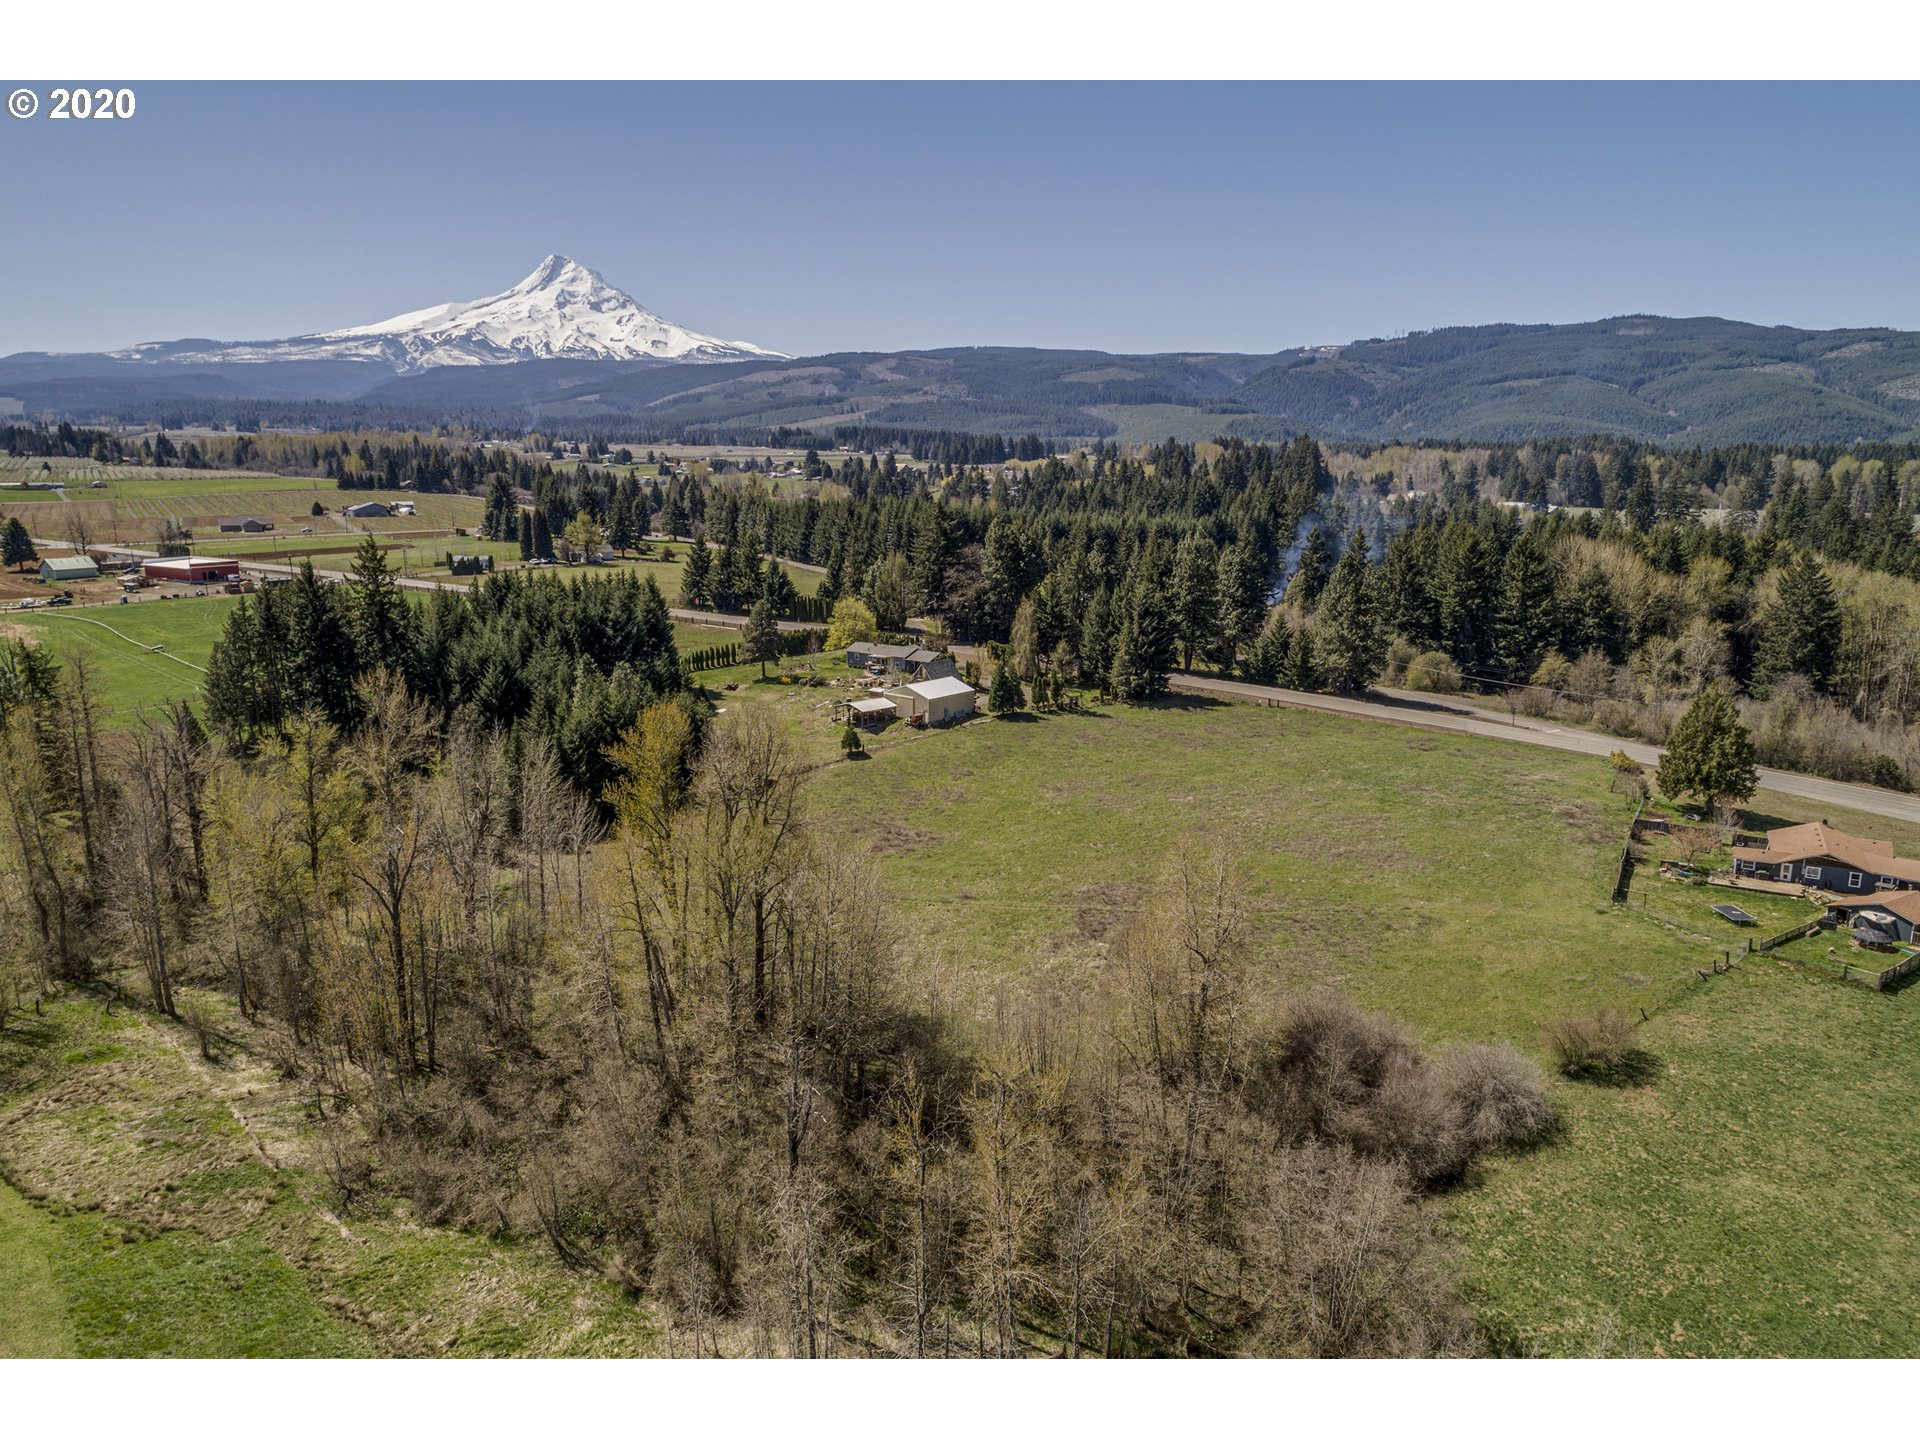 Photo of 5925 DEE HWY Mt Hood Prkdl OR 97041